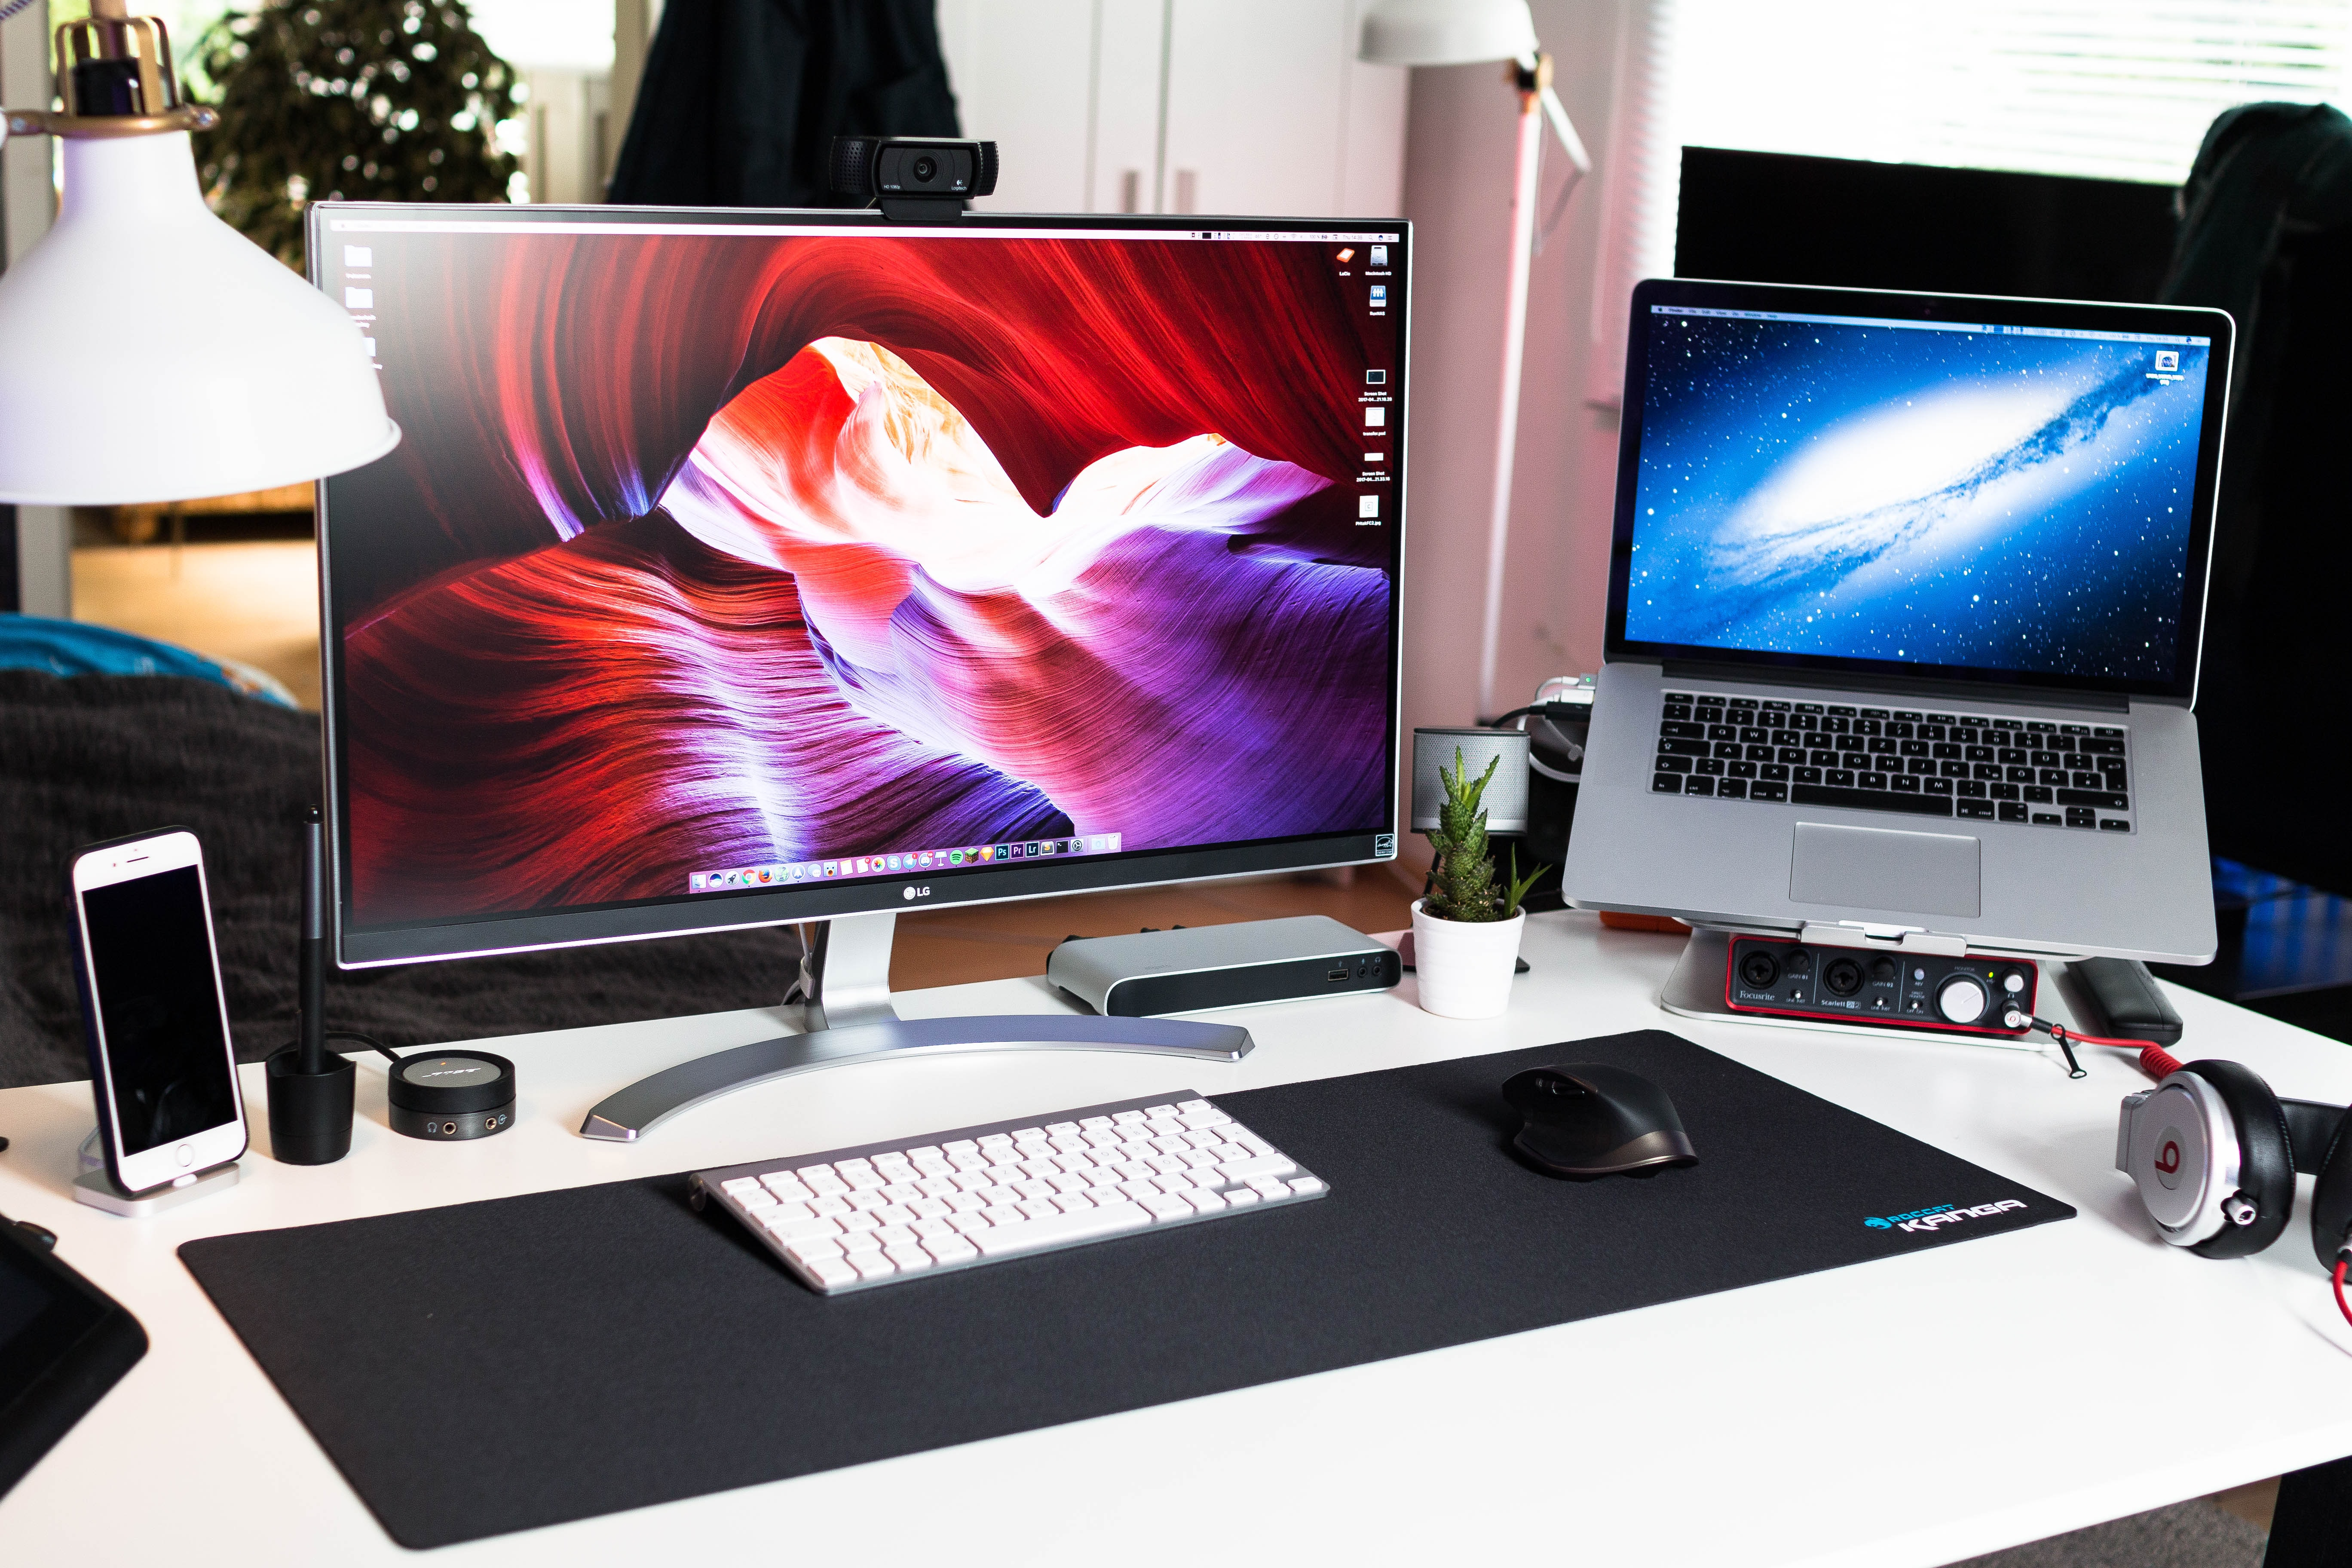 A computer workspace with a display, a MacBook and various accessories